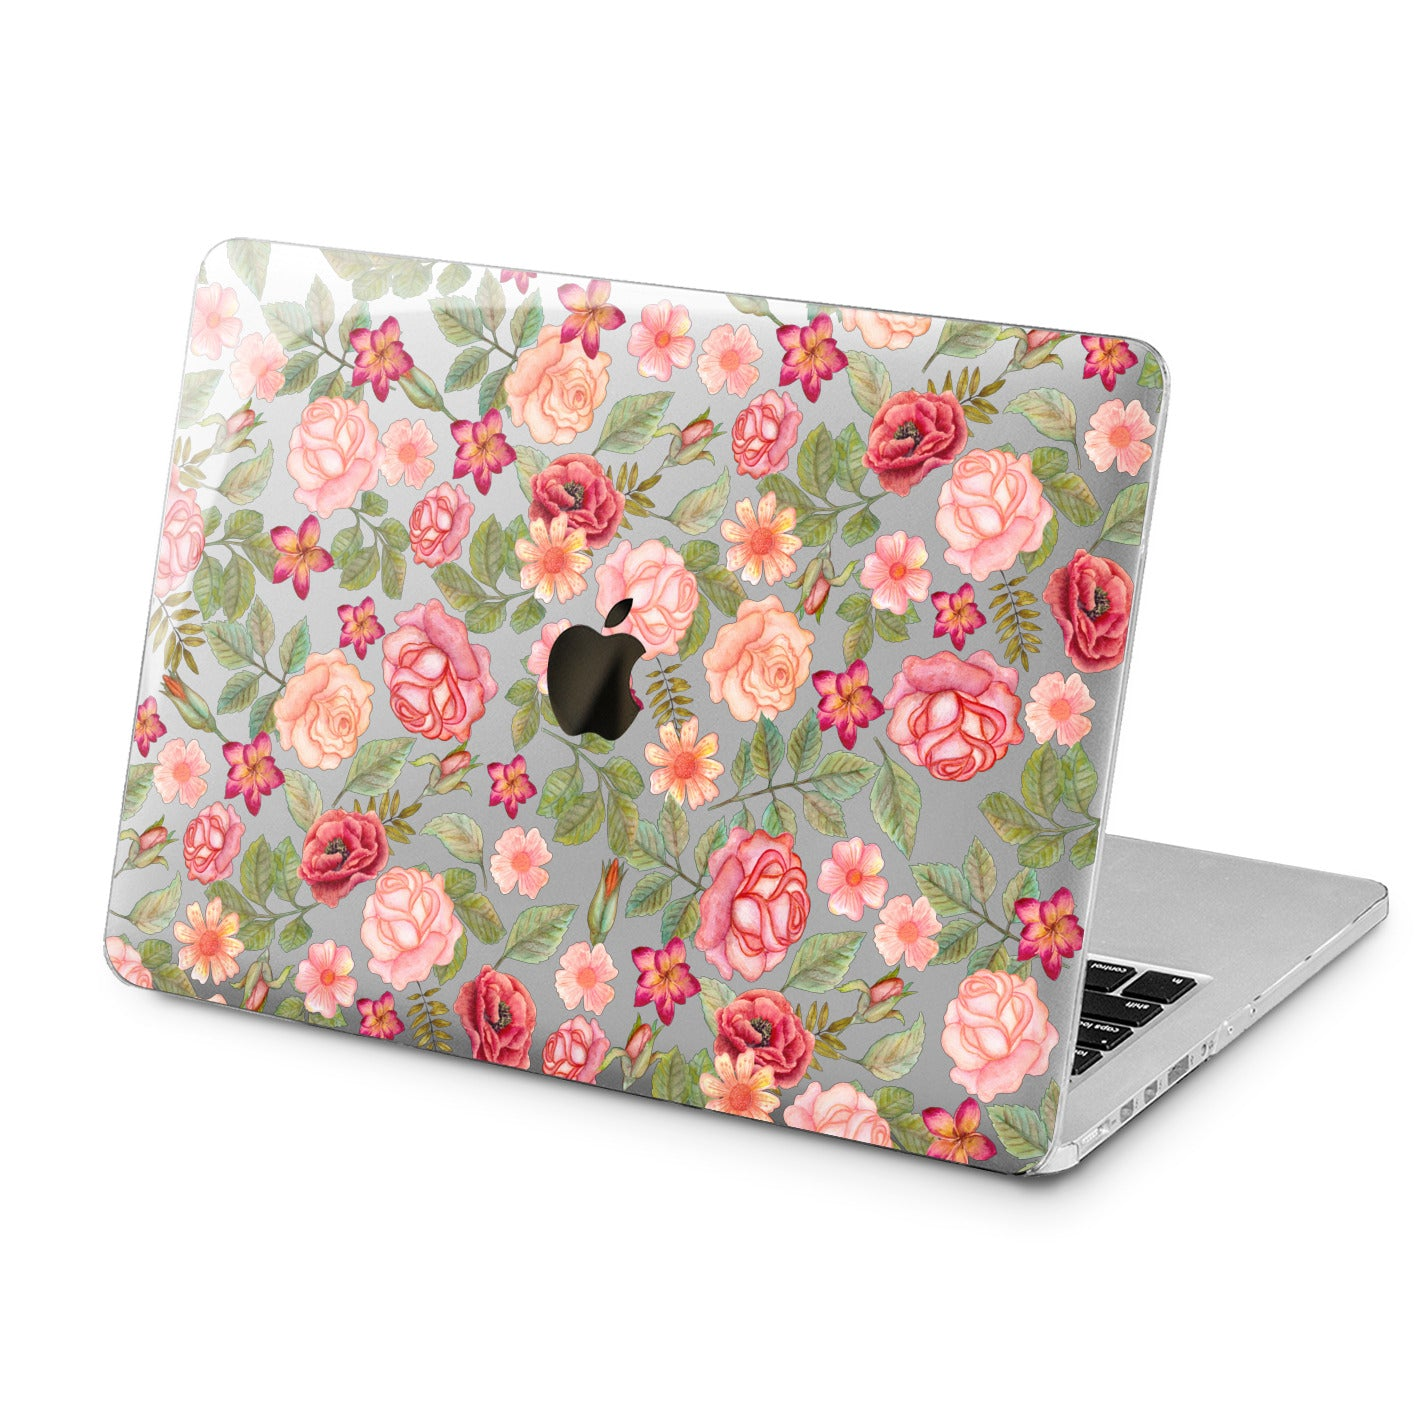 Lex Altern Lex Altern Cute Roses Theme Case for your Laptop Apple Macbook.